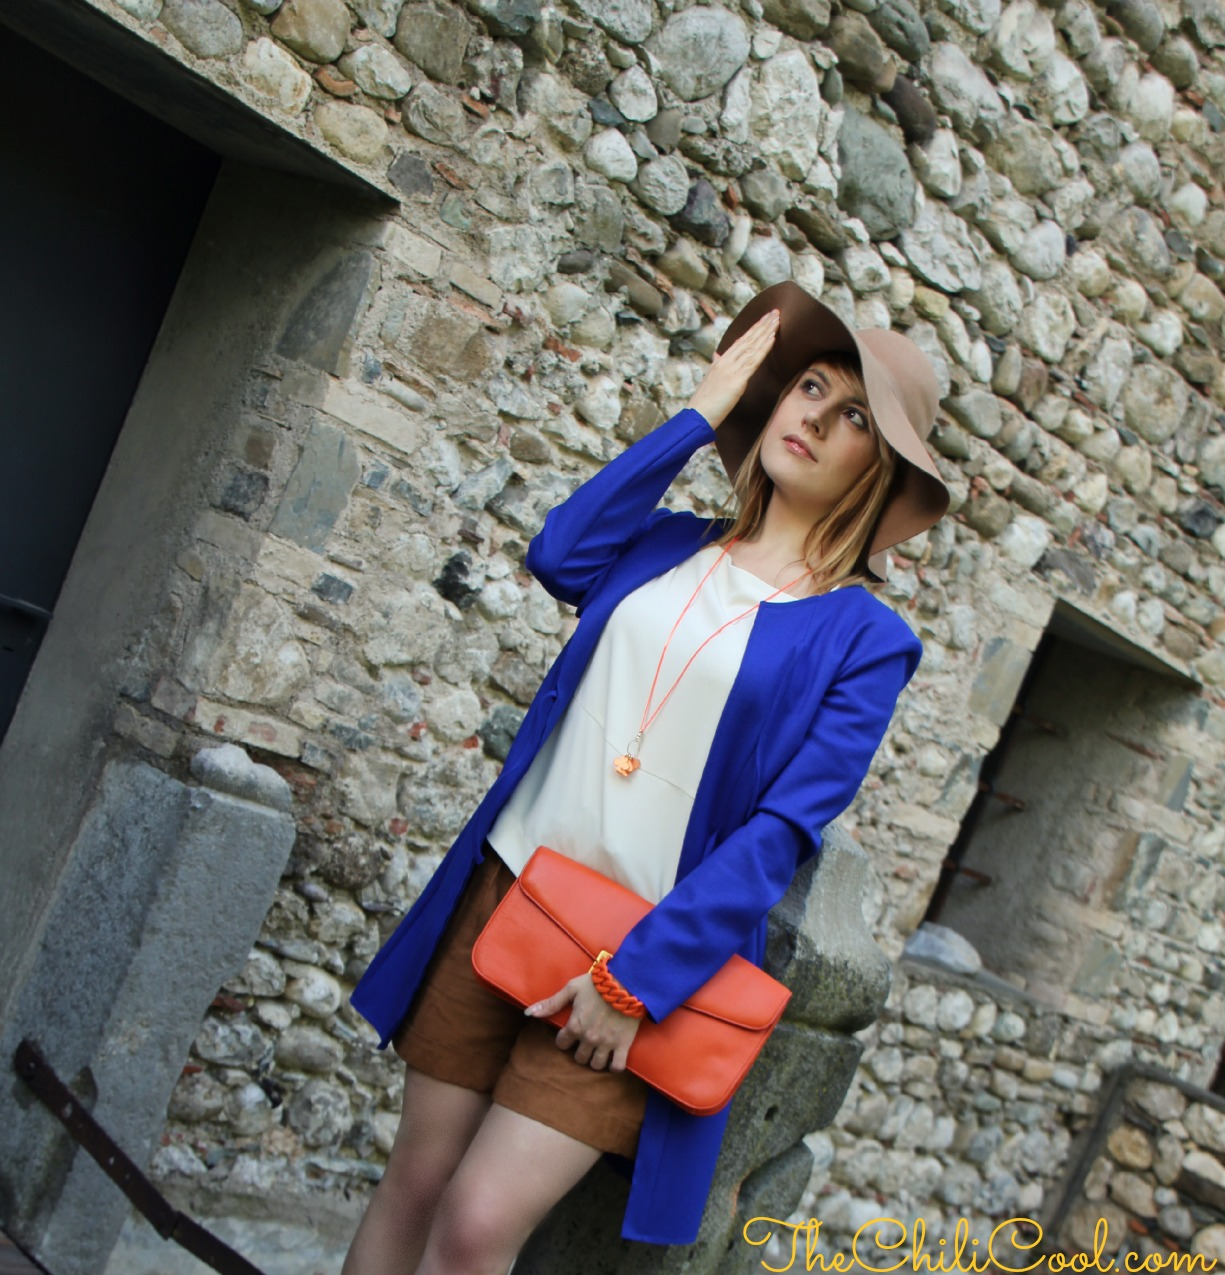 alessia milanese, thechilicool, fashion blog, fashion blogger,mood pop tra arancio e royal blue, marc by marc jacobs bag